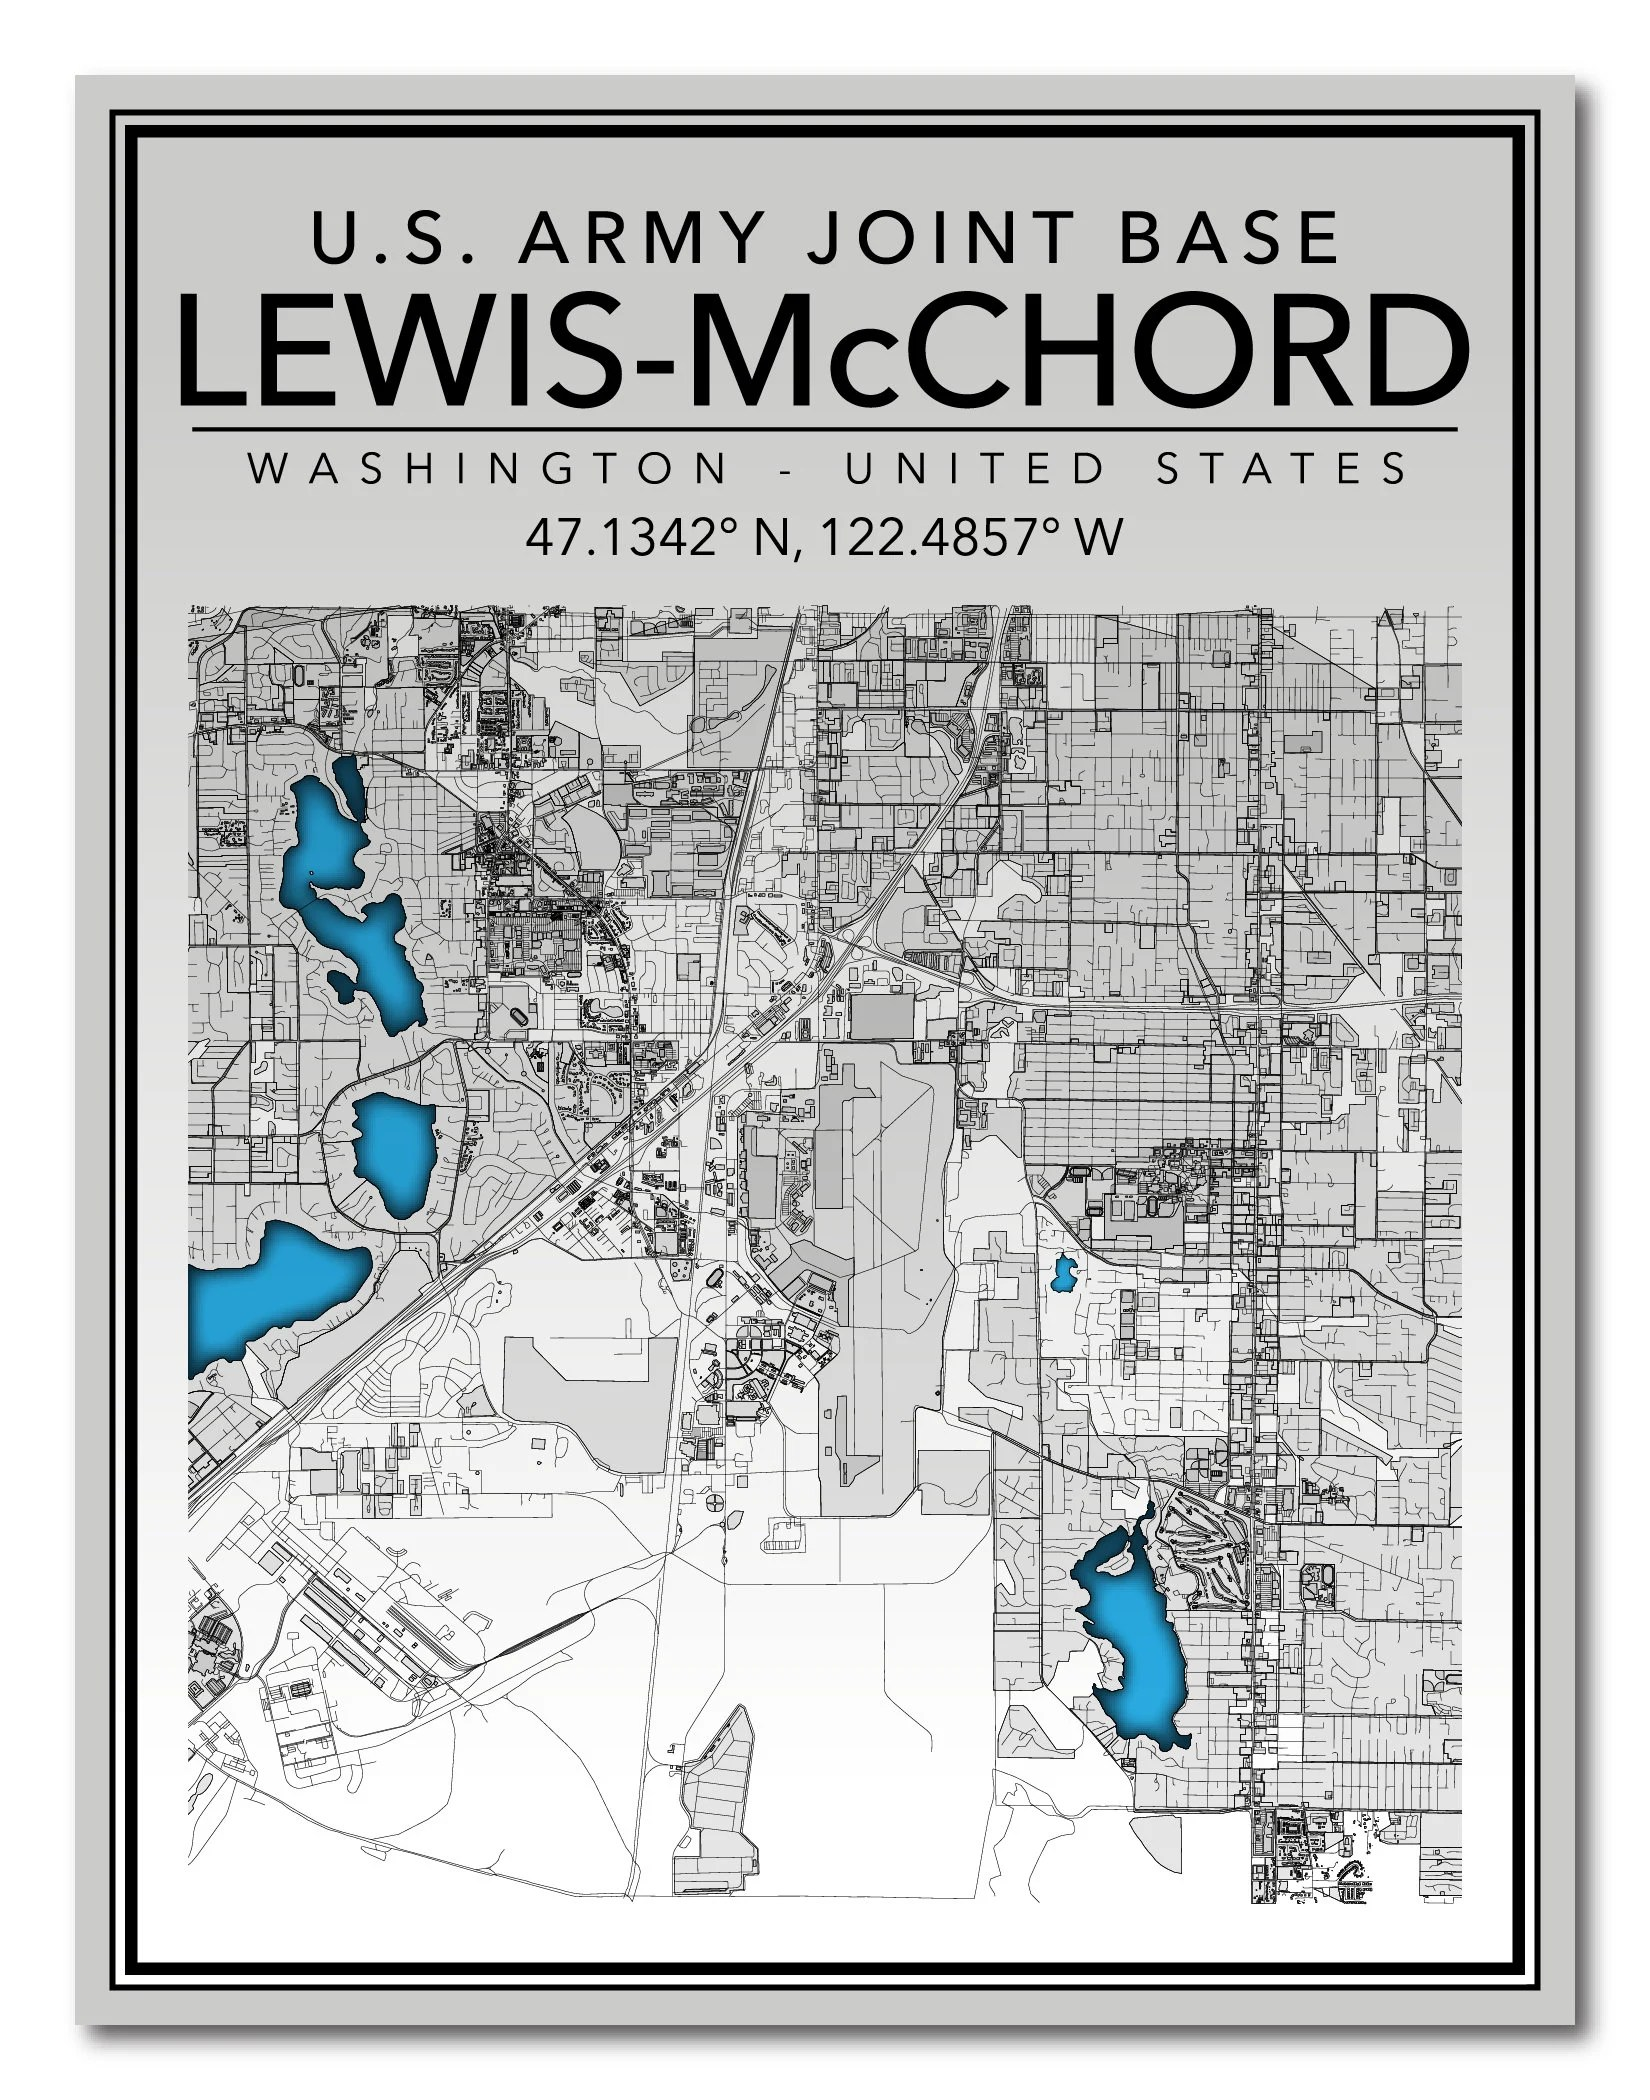 Joint Base Lewis Mcchord Map : joint, lewis, mcchord, Joint, LewisMcChord, Washington